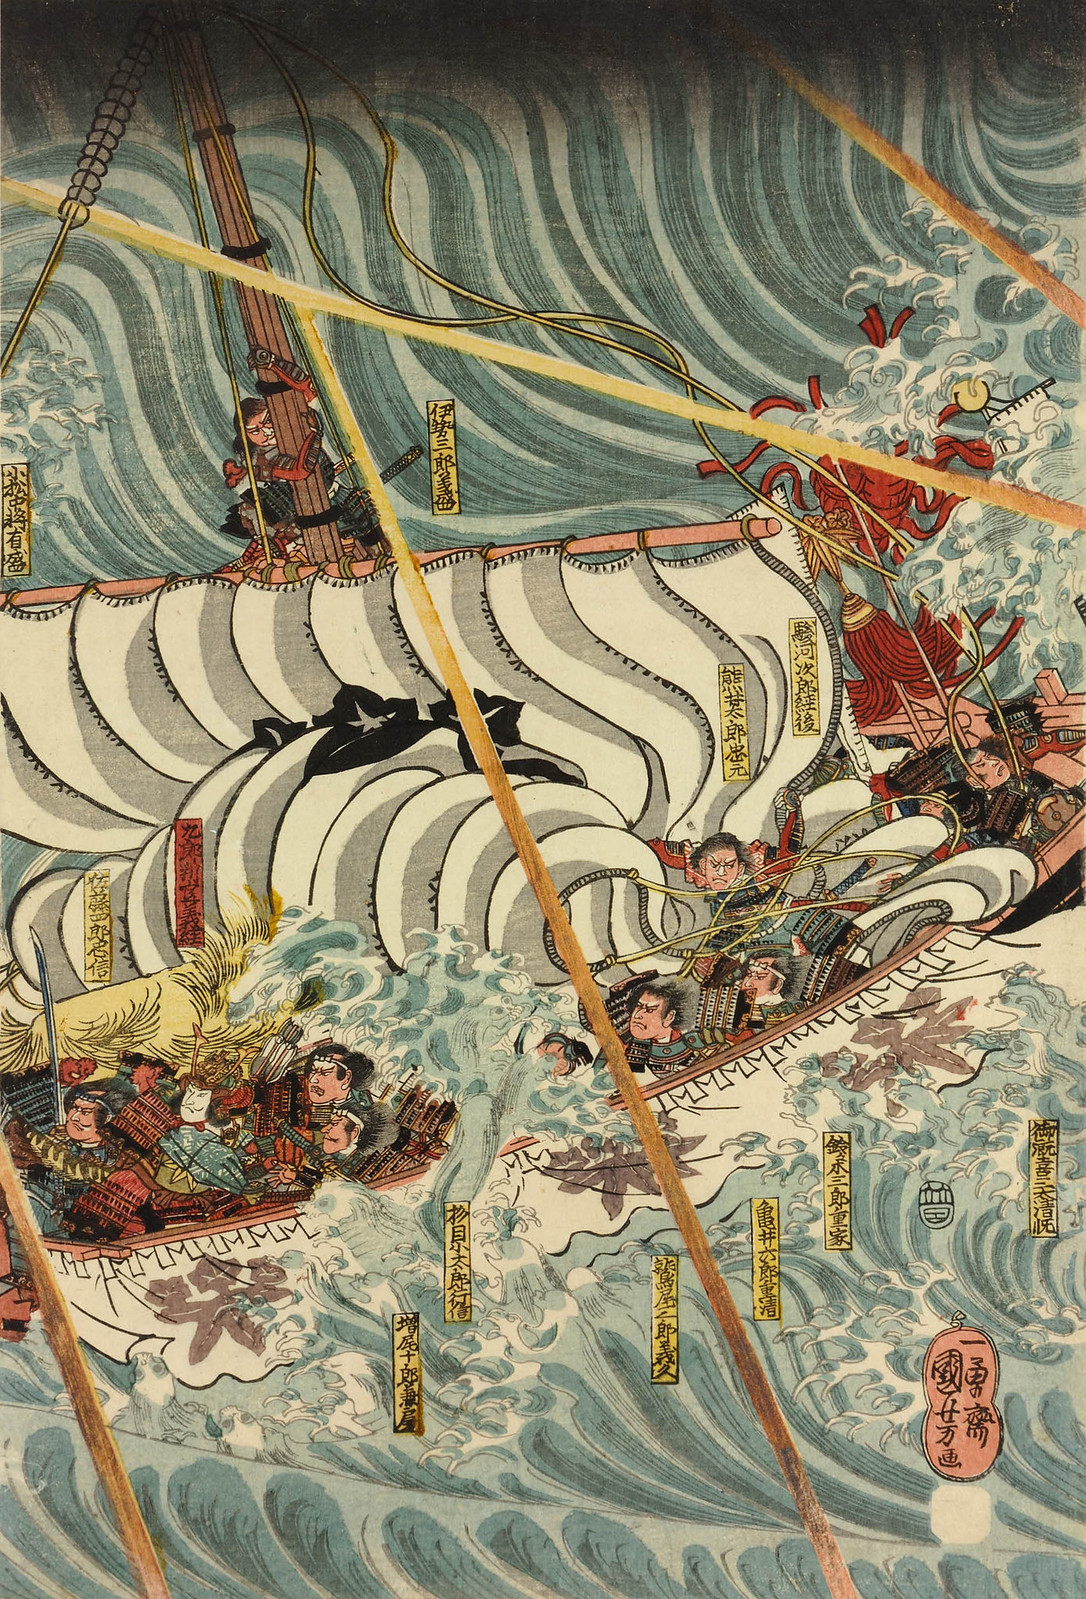 Utagawa Kuniyoshi - The Taira ghosts arising from the sea (left) to attack Yoshitsune's ship (centre), with some warriors in the water, 19th C (middle panel)